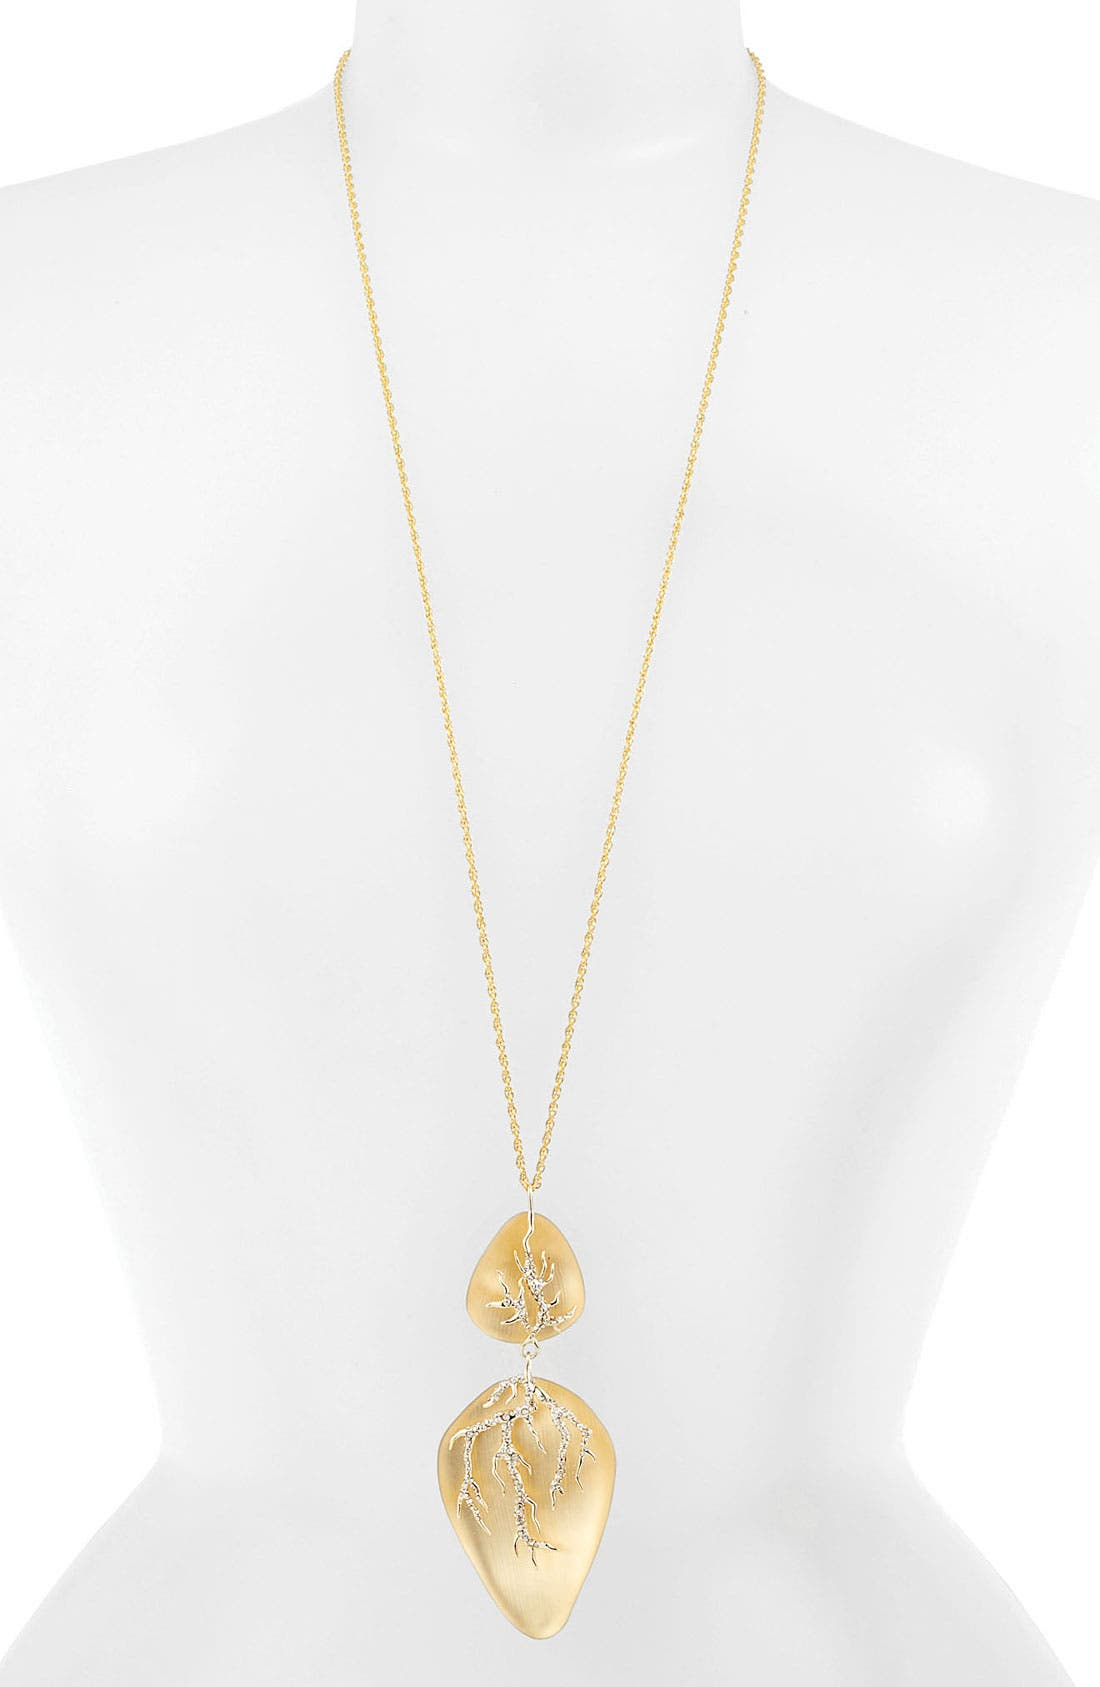 Main Image - Alexis Bittar 'Ophelia' Long Pendant Necklace